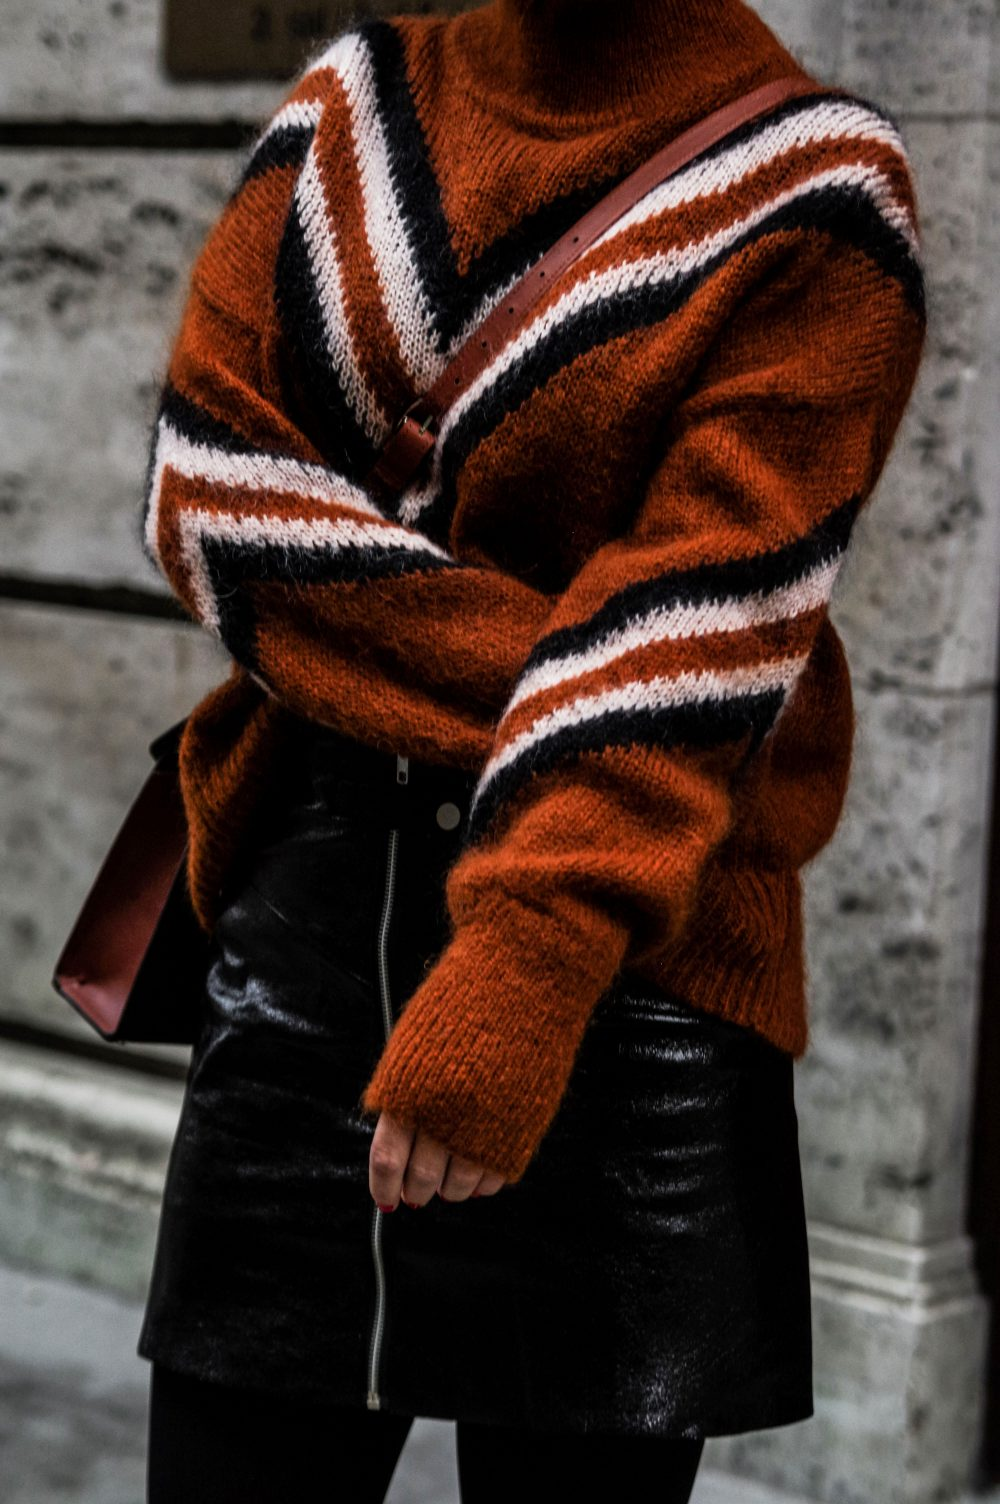 3-Scandinavian-winter-outfits-ideas-instagram-round-up-layered-outfitsweaterwork-wear-casual-style-retro-vibes-outfit-Copenhagen-streetstyle.